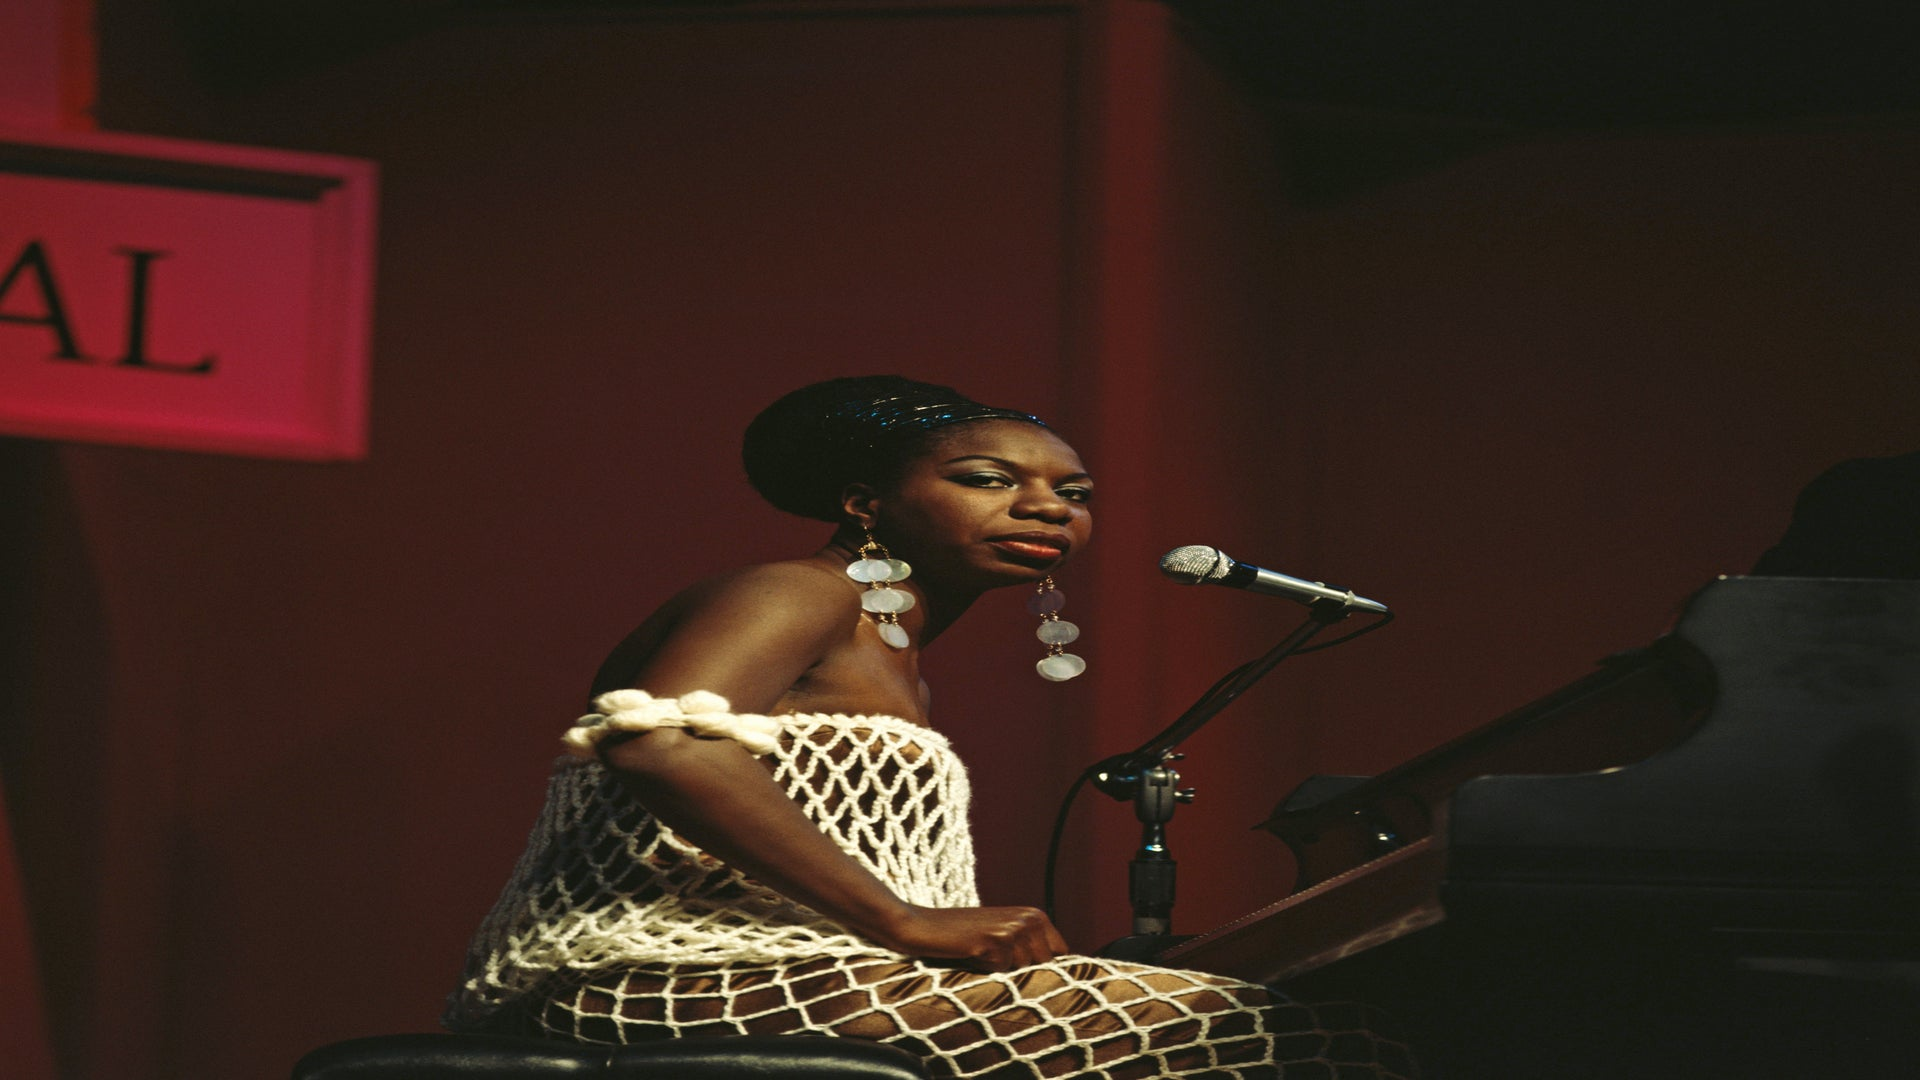 ICYMI: Nina Simone Nominated For Rock And Roll Hall of Fame